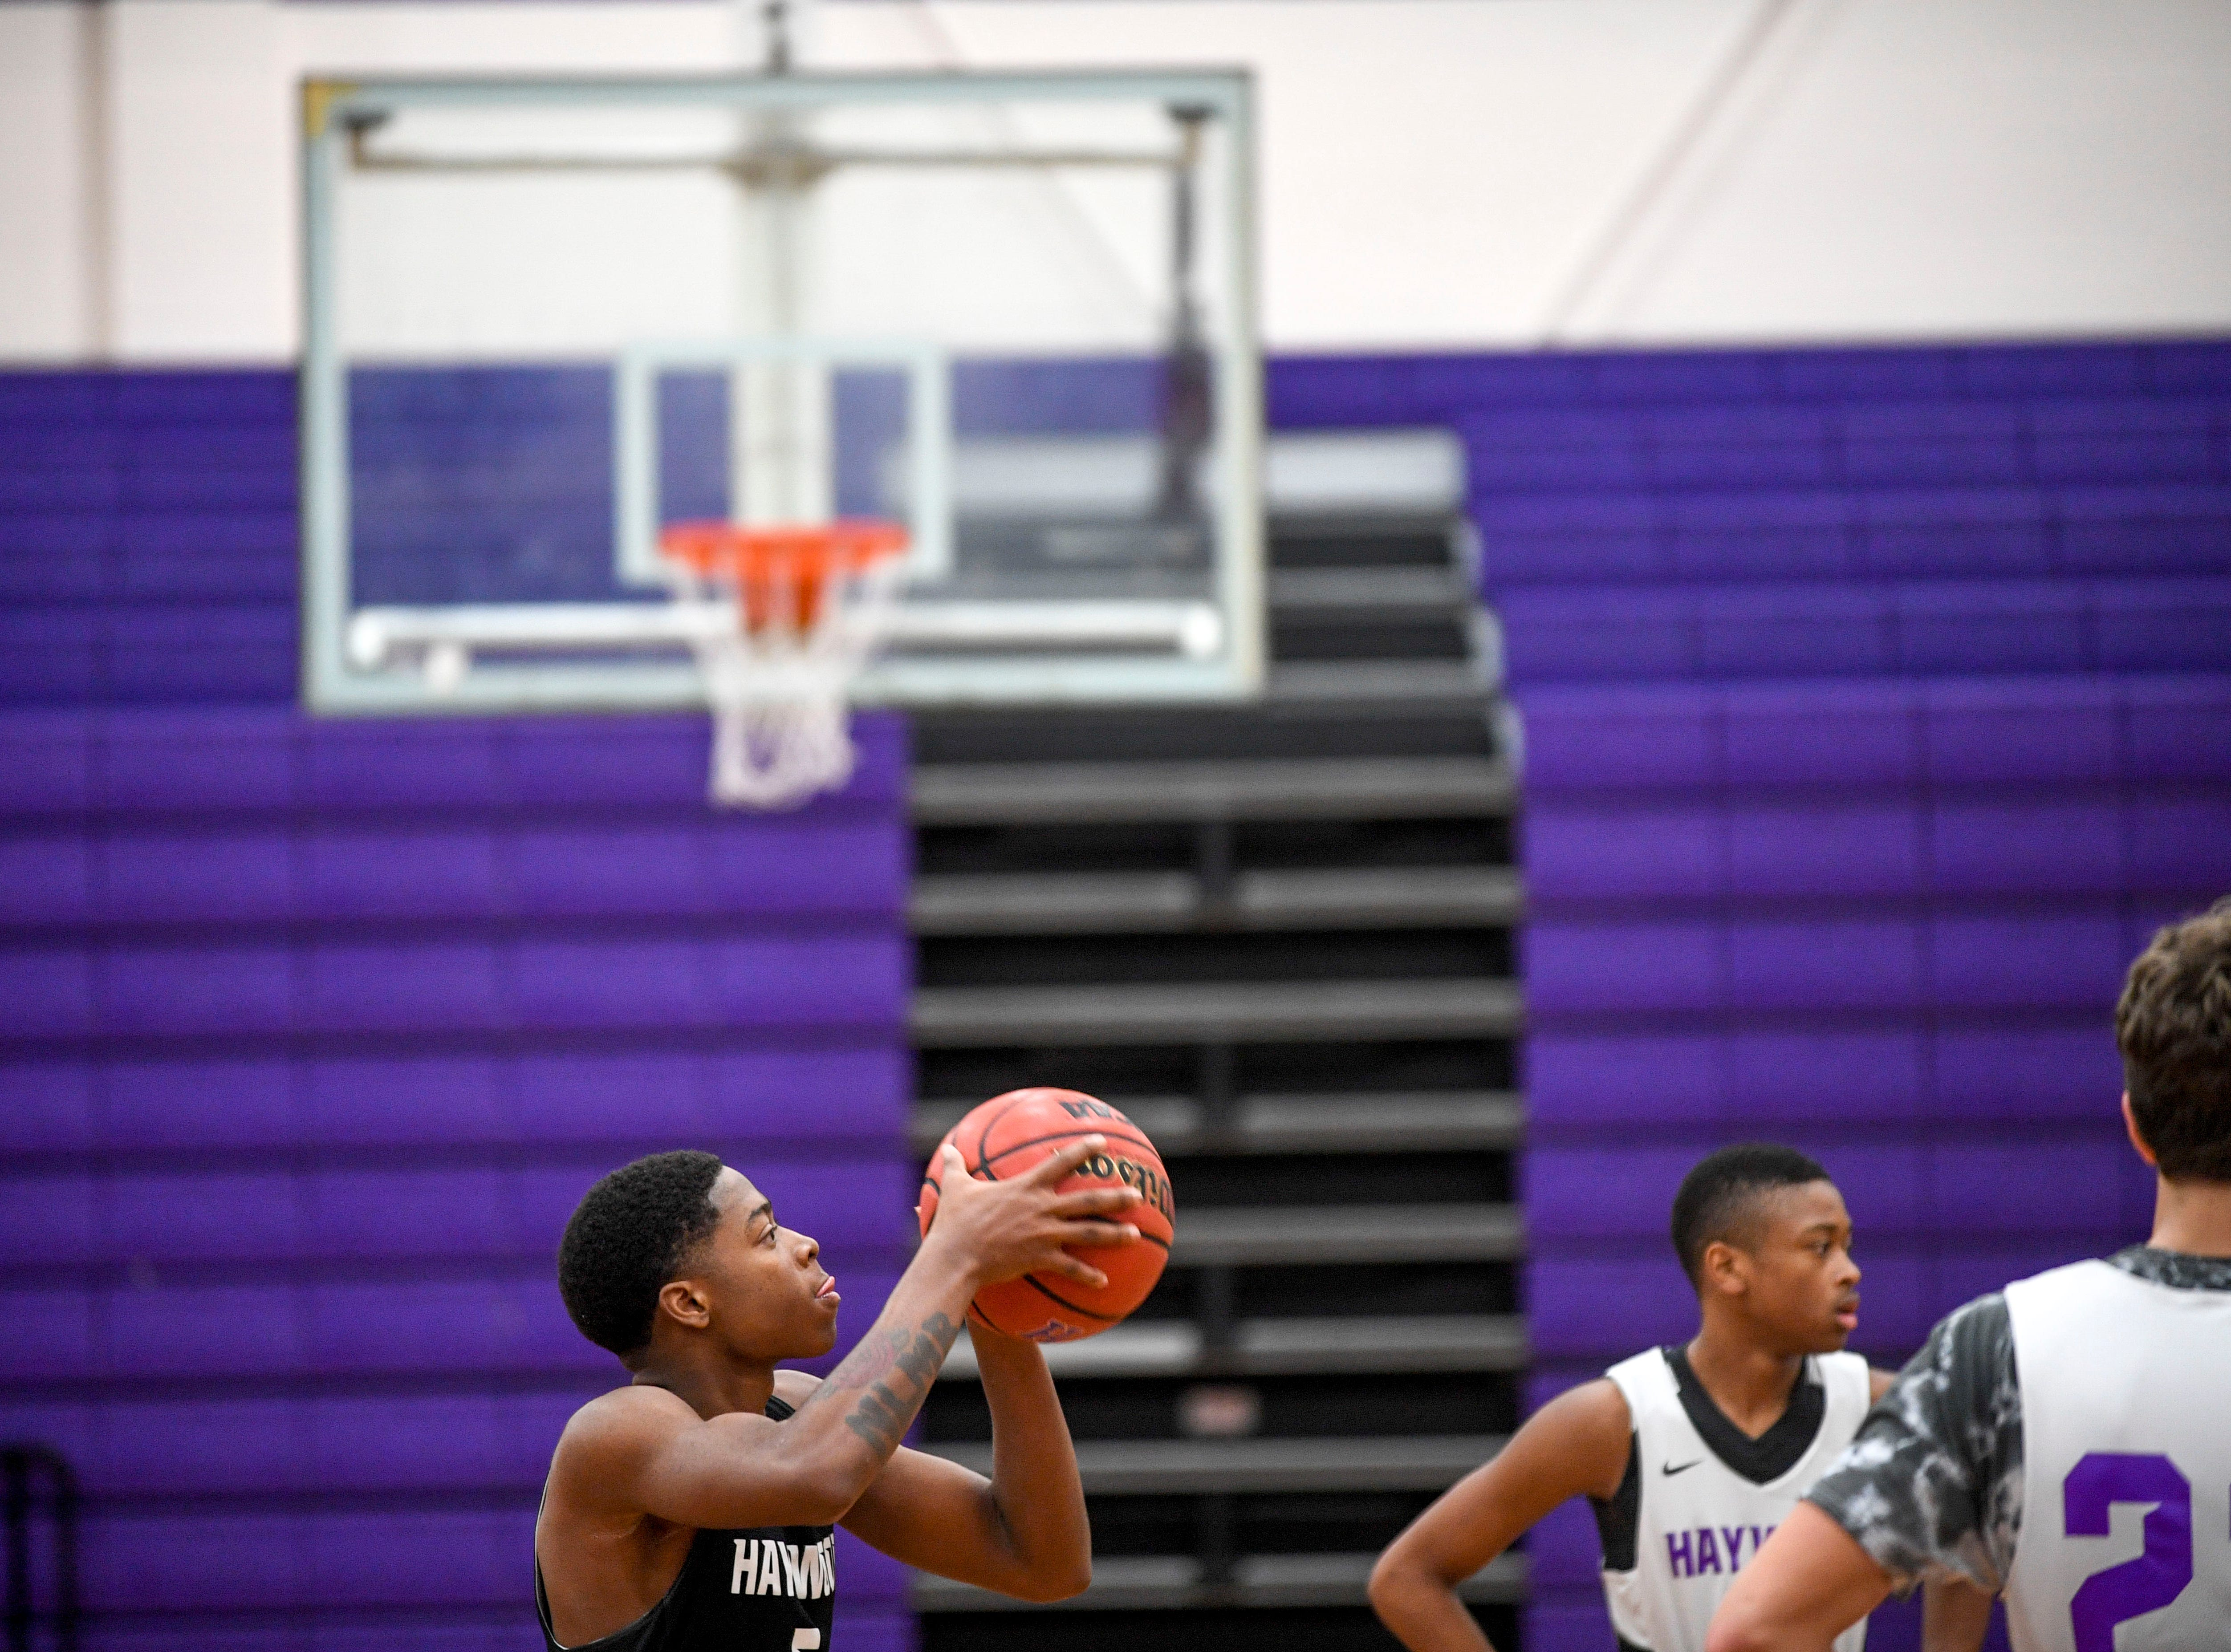 Kyron Stocking looks to take a shot from the free throw line in a 5v5 drill during basketball practice at Haywood High School in Brownsville, Tenn., on Wednesday, Jan. 2, 2019.